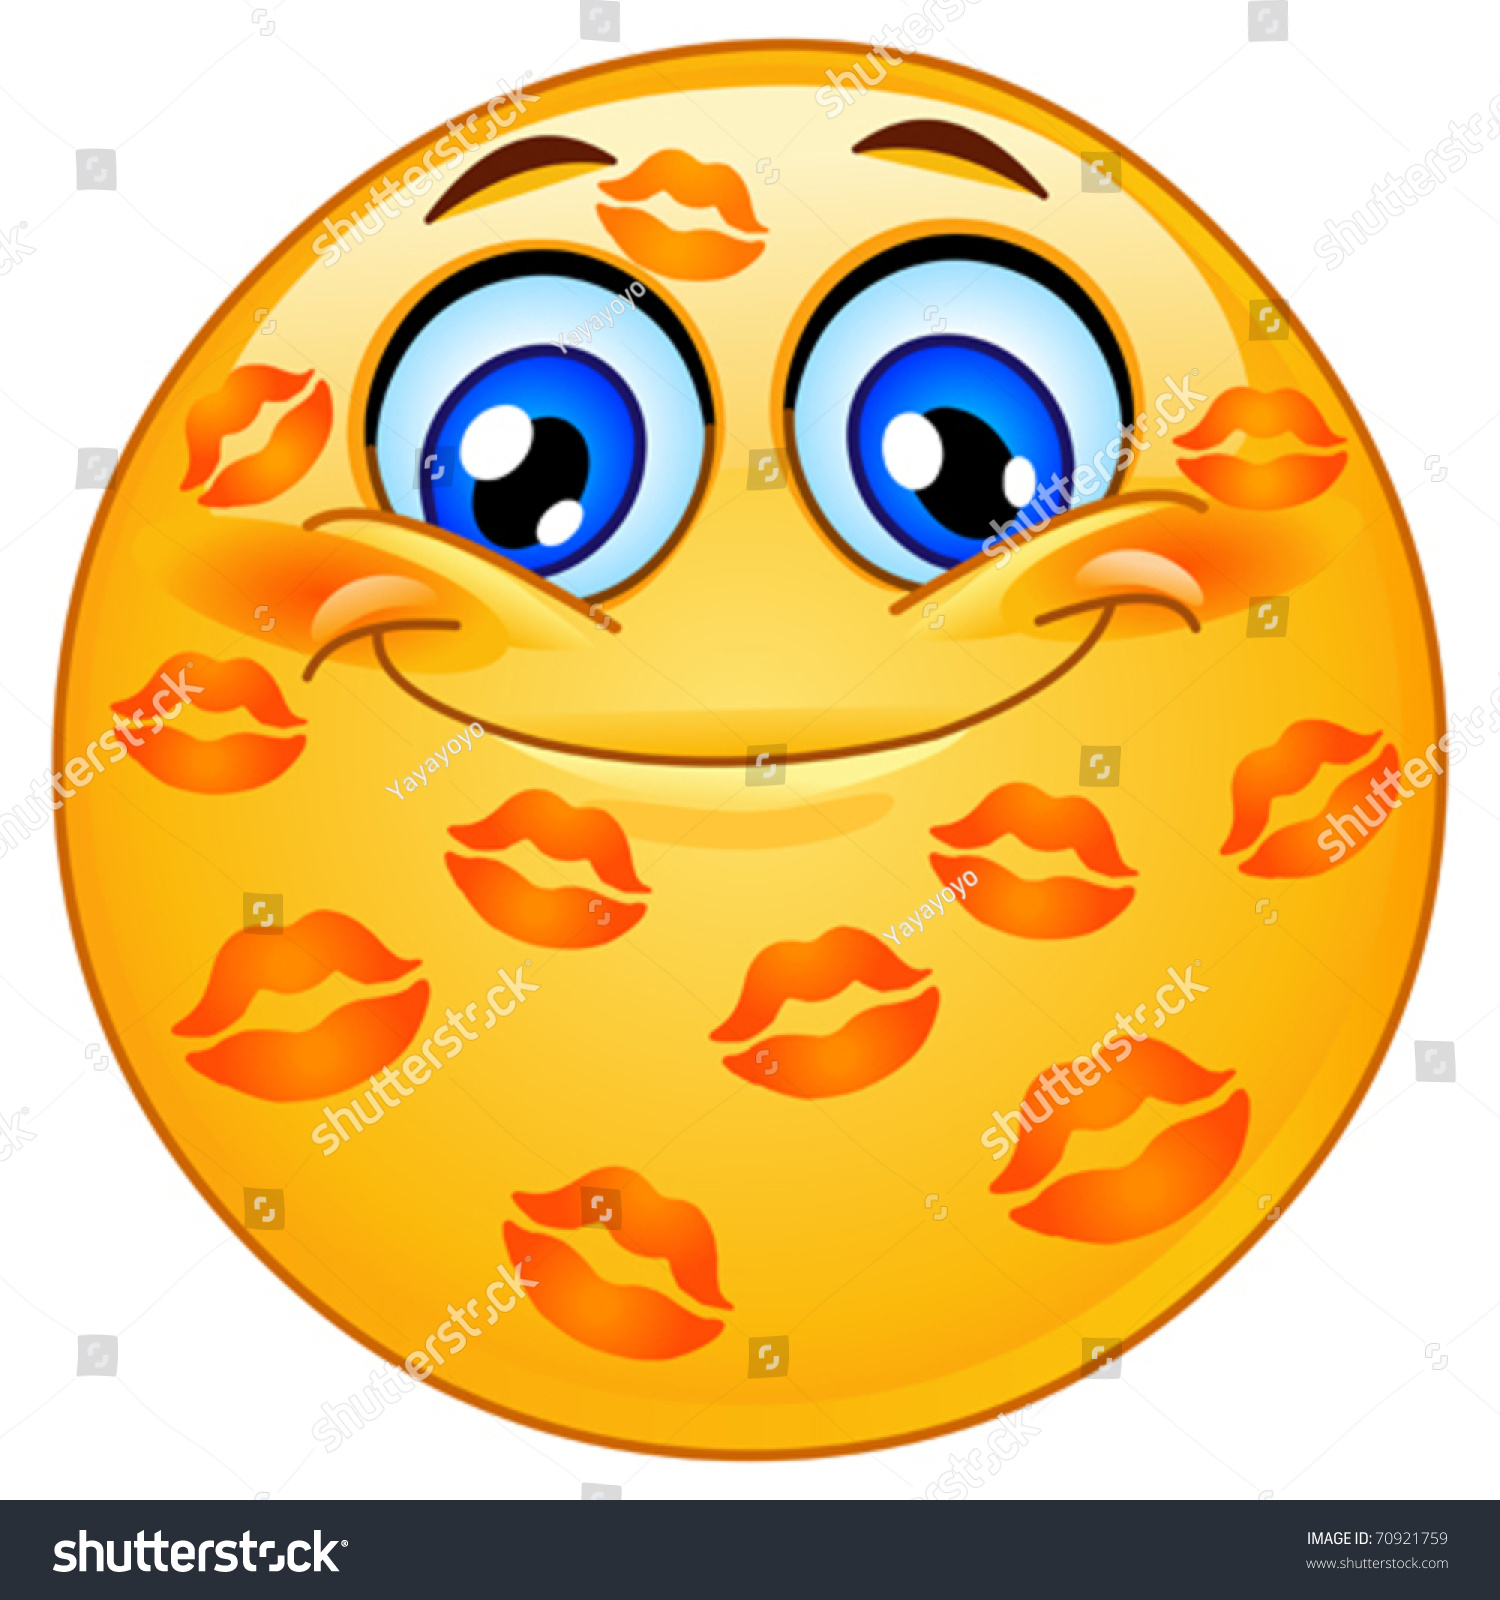 emoticon many kisses stock vector (royalty free) 70921759 - shutterstock